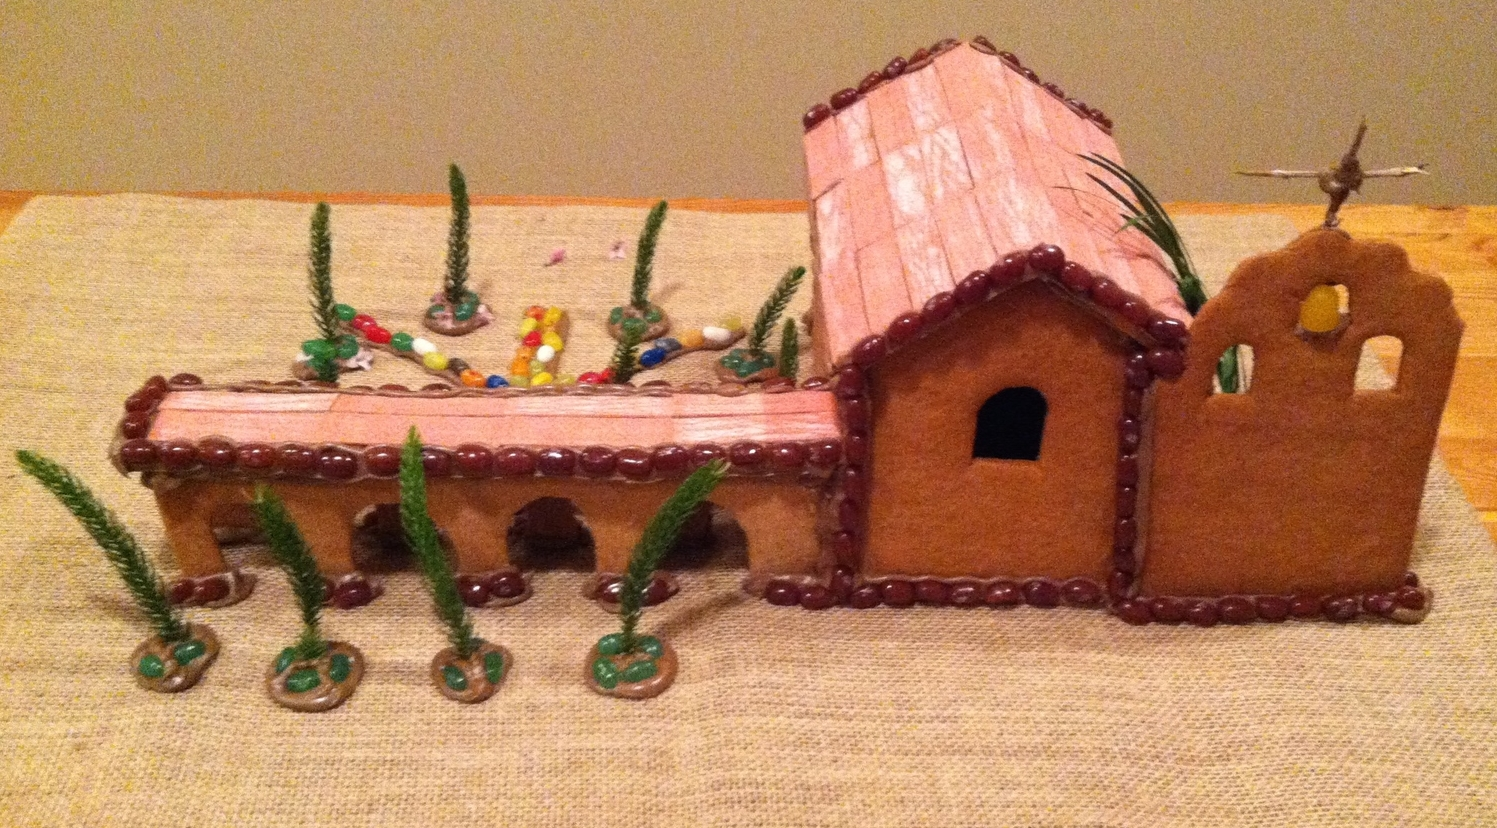 Gluten-Free & Dairy-Free Gingerbread California Mission